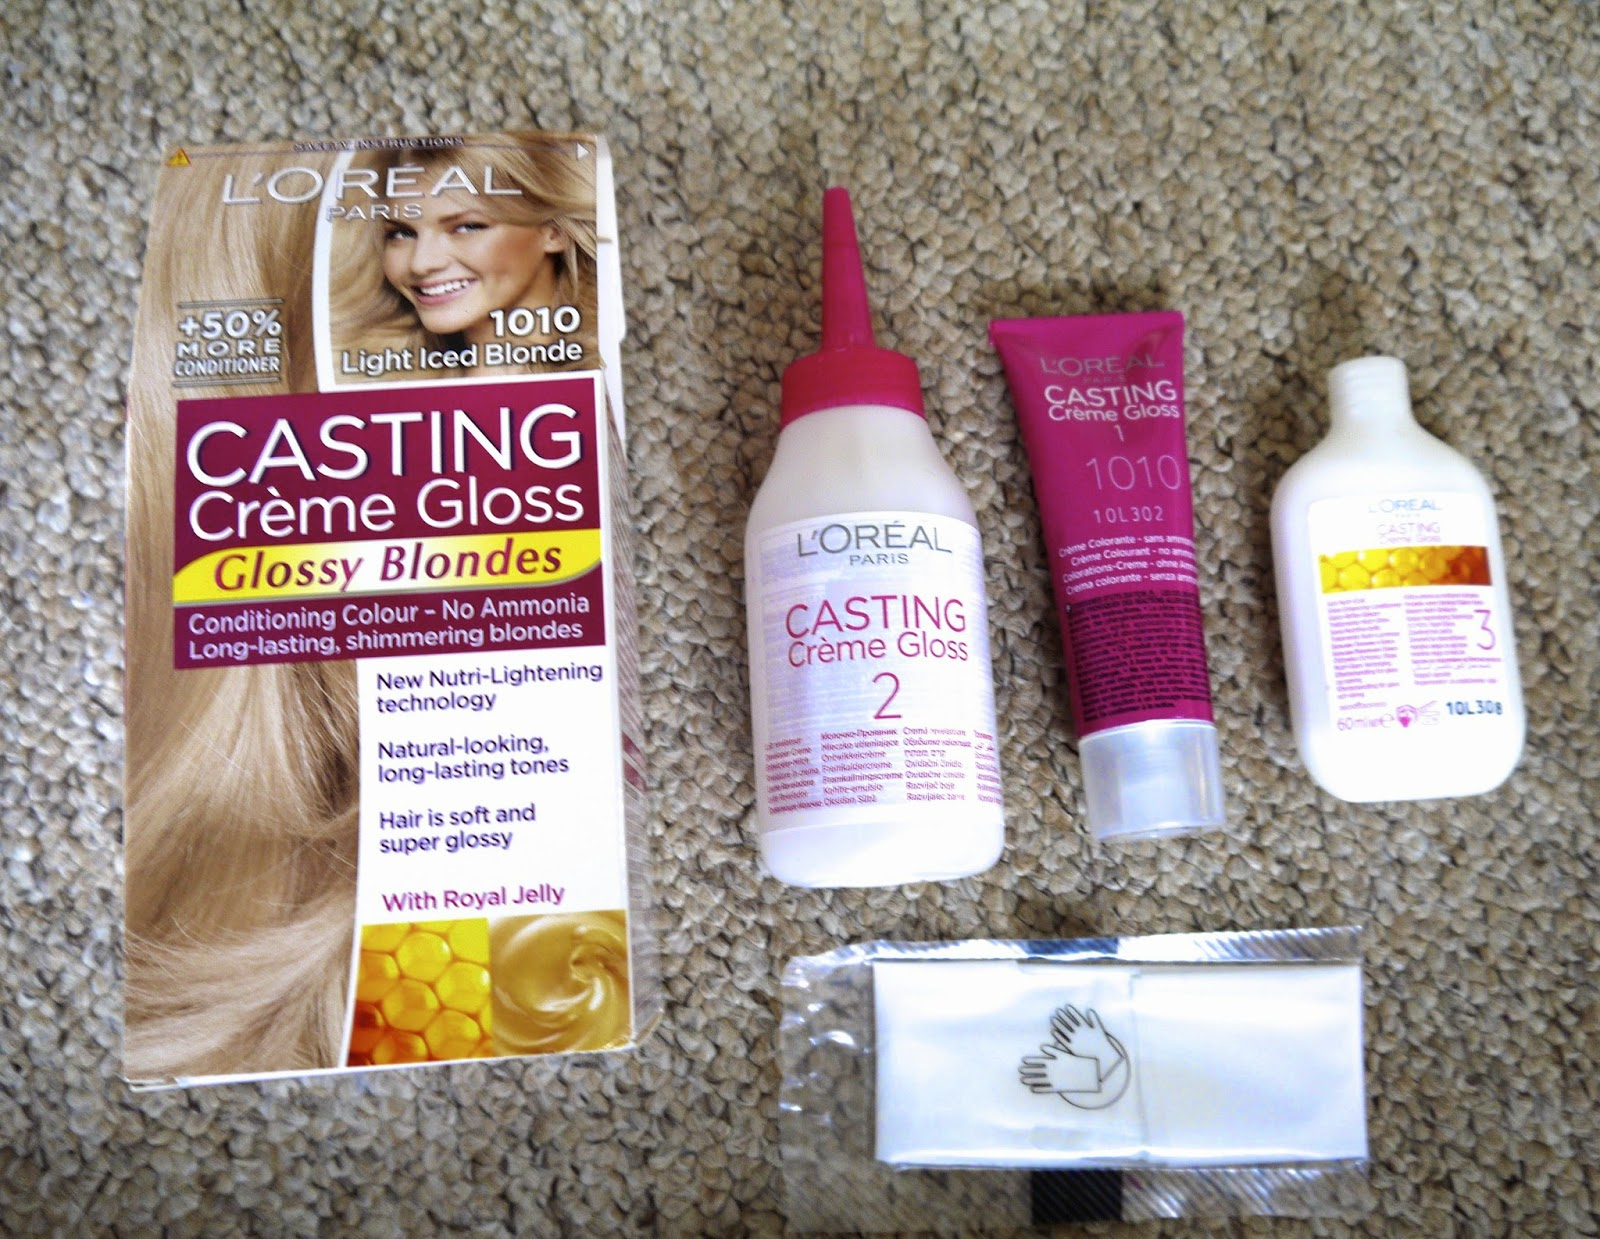 L'Oreal Casting Creme Gloss 'Glossy blondes' dye